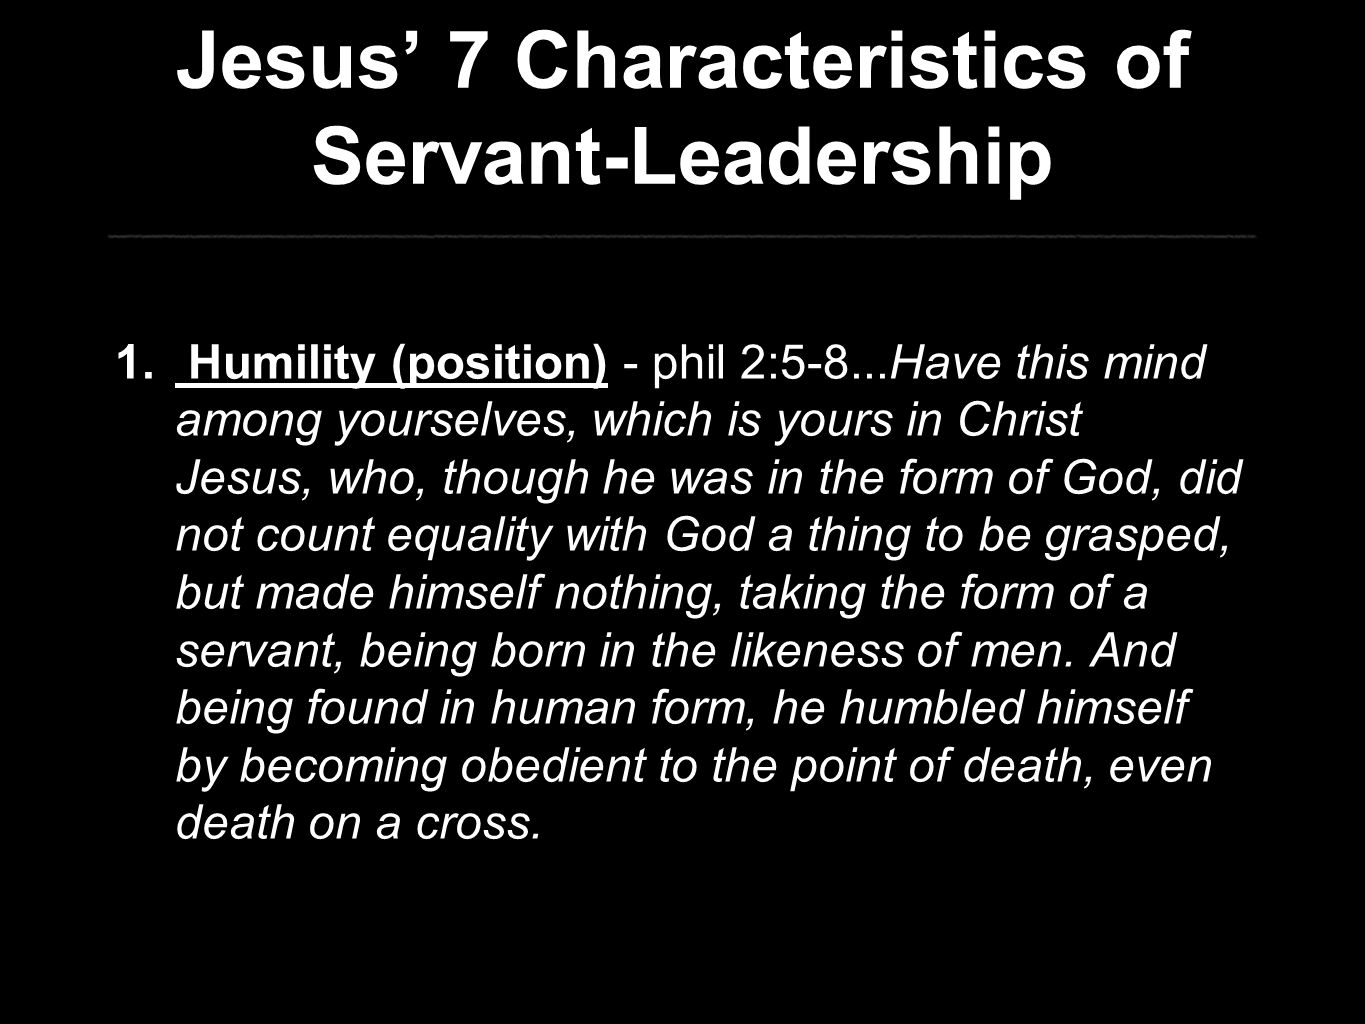 Jesus' 7 Characteristics of Servant-Leadership 1. Humility (position) - phil 2:5-8...Have this mind among yourselves, which is yours in Christ Jesus,